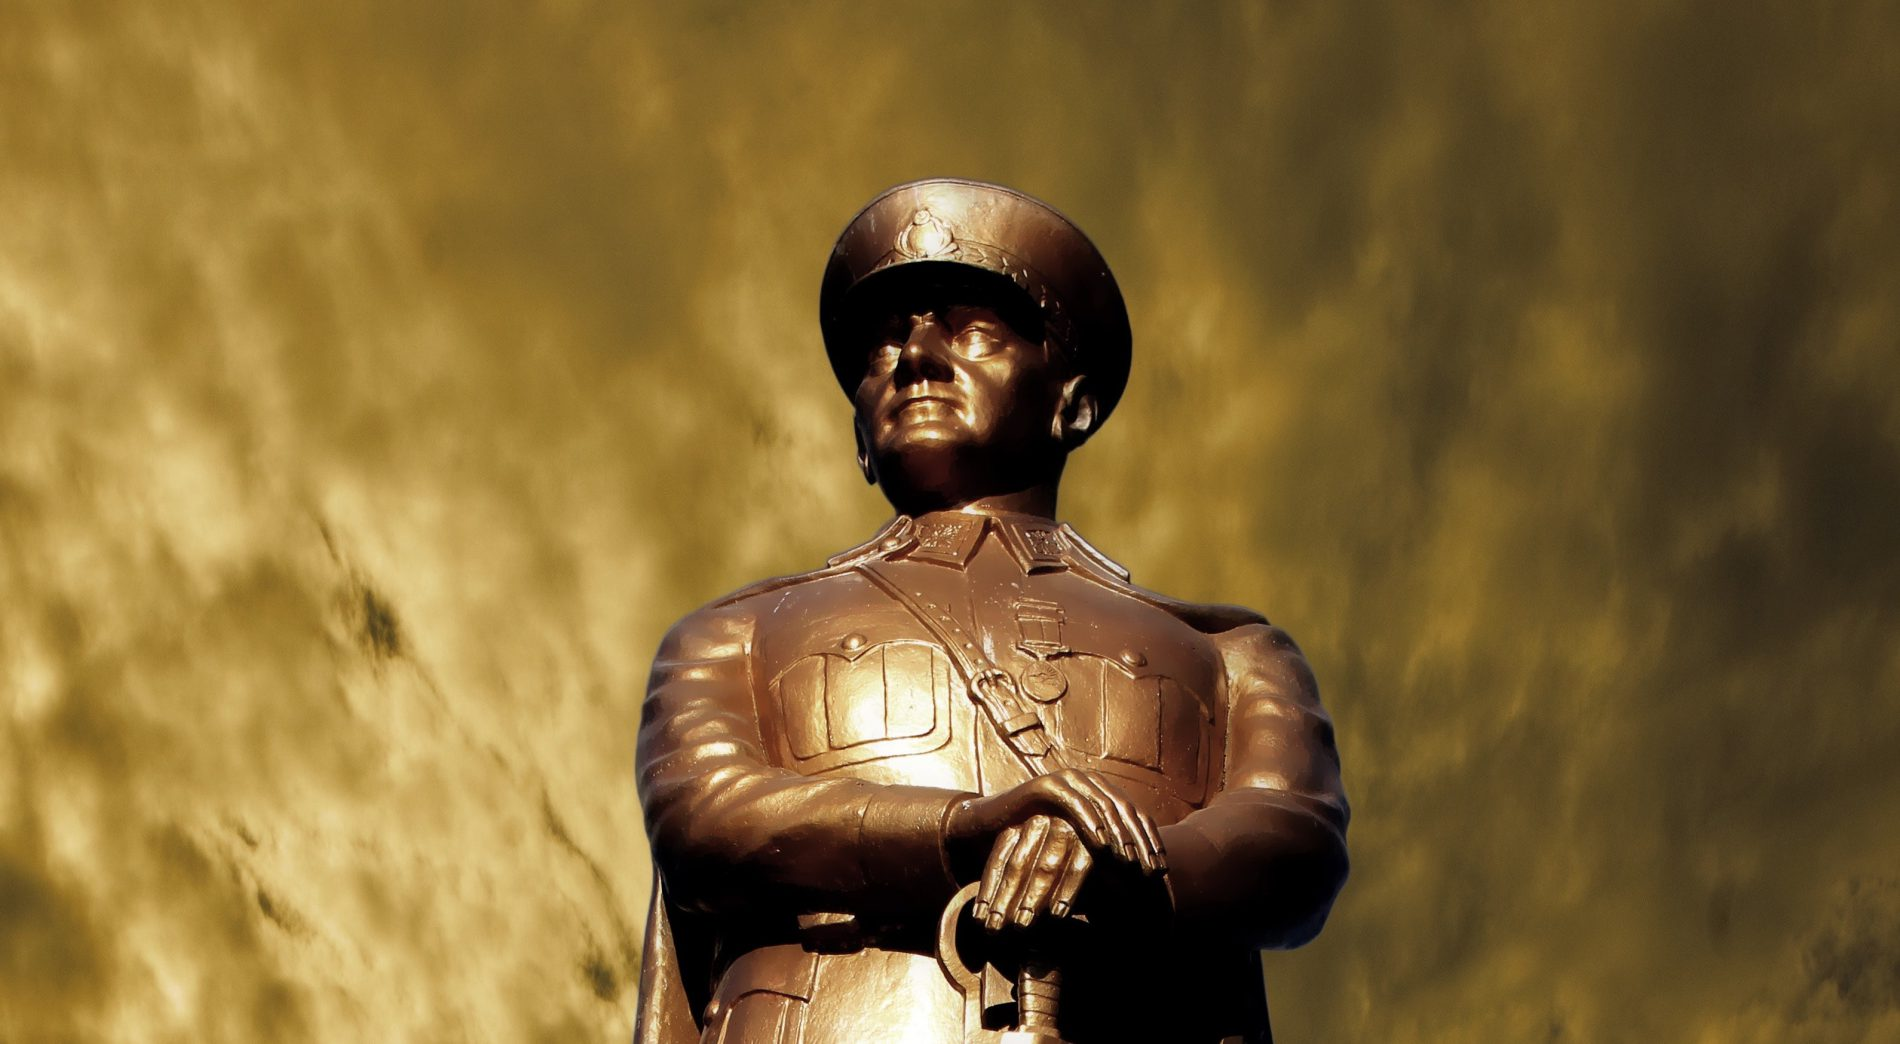 Know-It-All Leaders depicted by a scary military statue